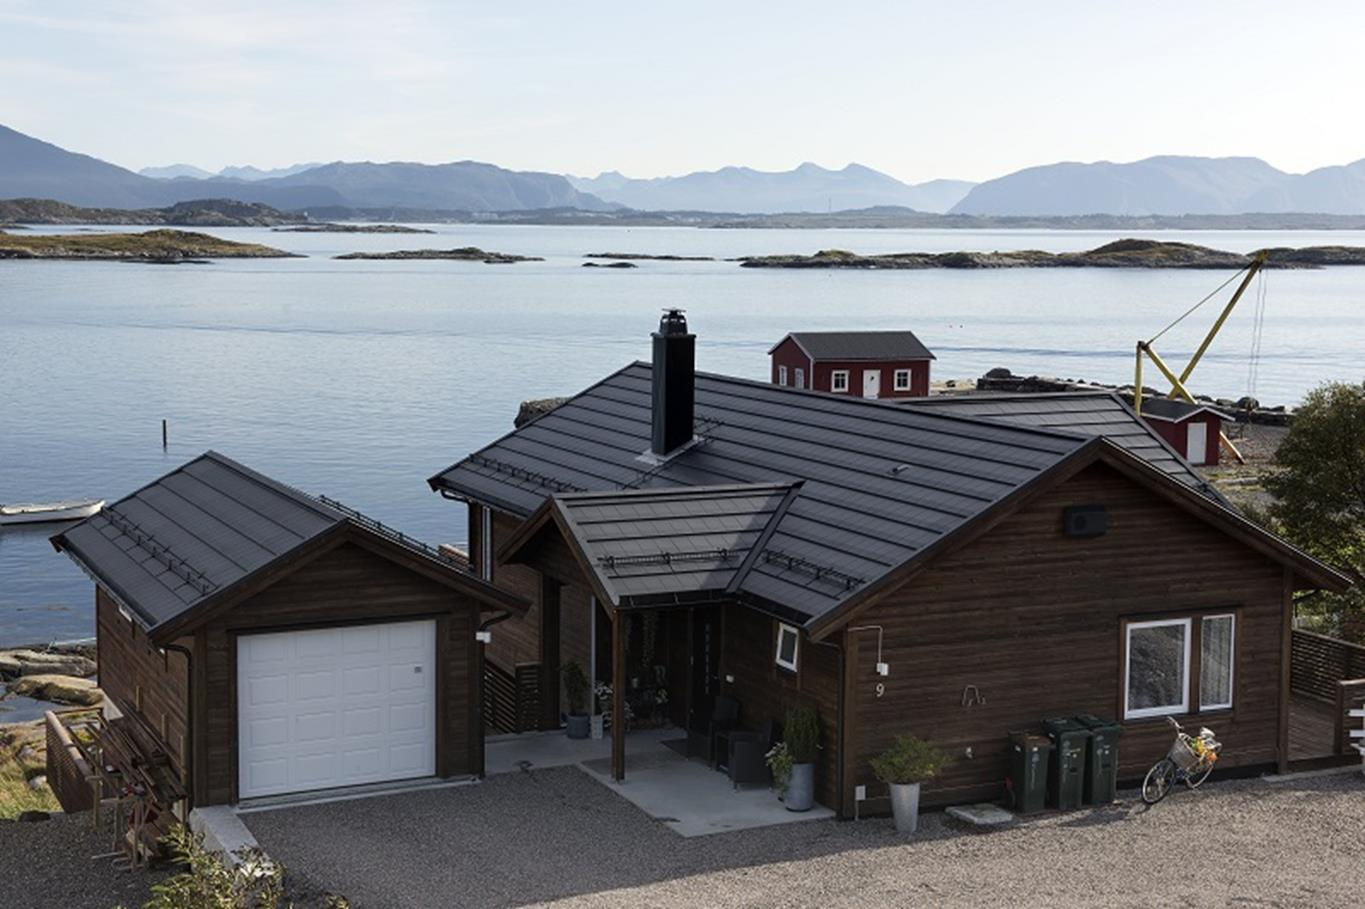 Pitched roof building with metal tile roof by tranquil water